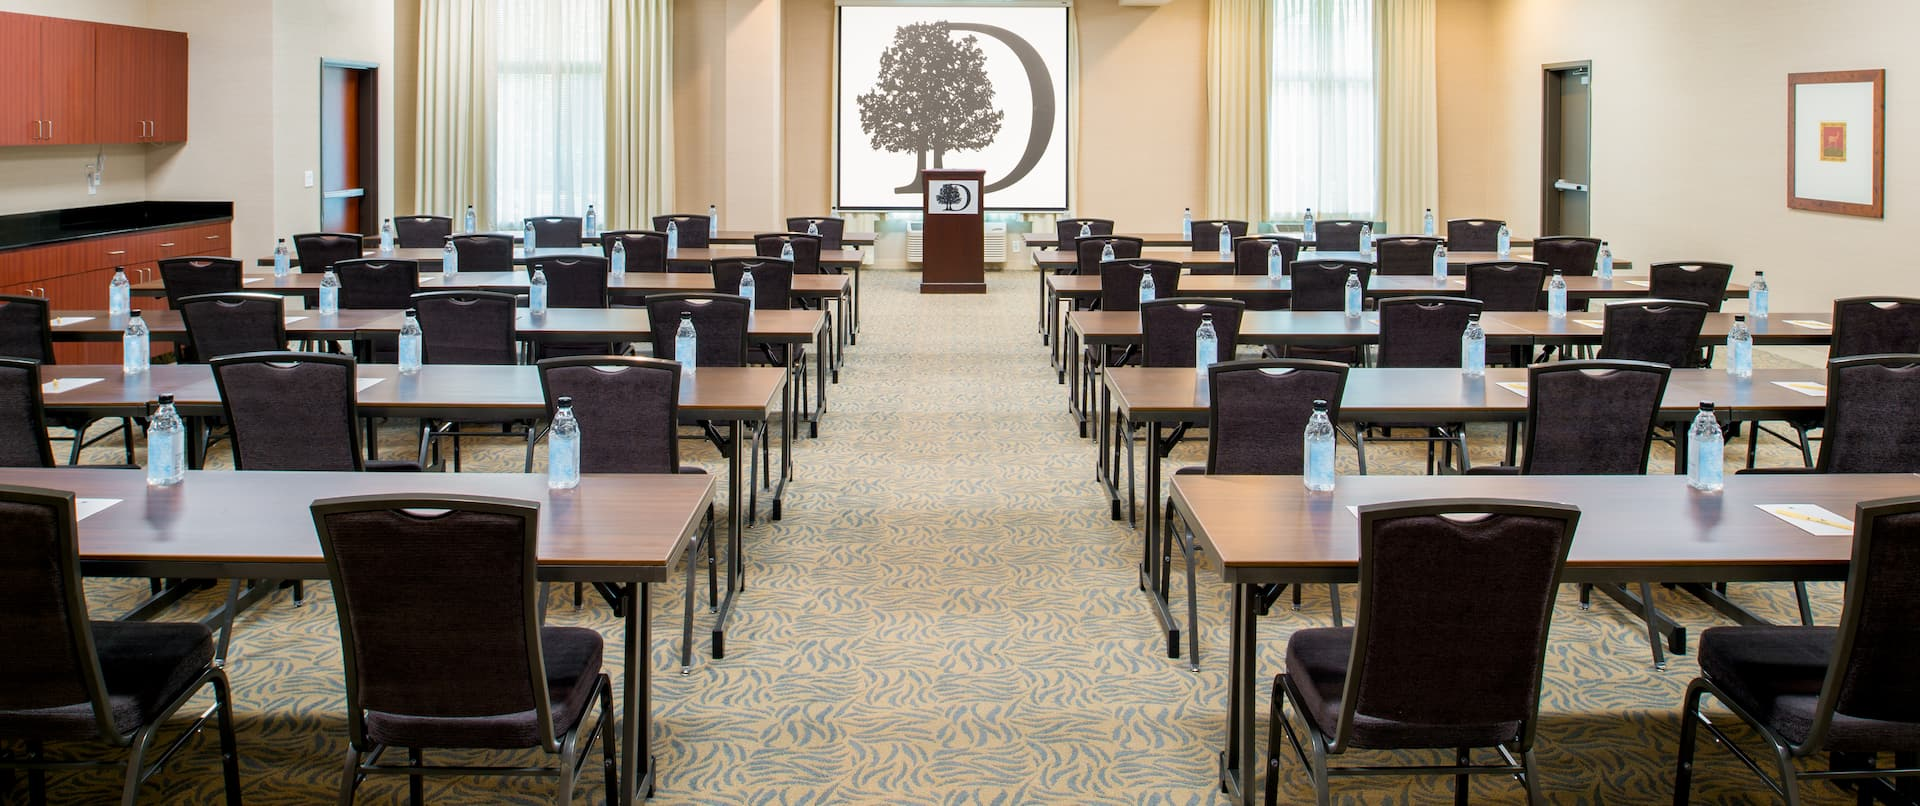 Classroom Setup in Meeting Room With Tables and Chairs Facing Windows With Sheer Drapes, Presentation Screen and Podium